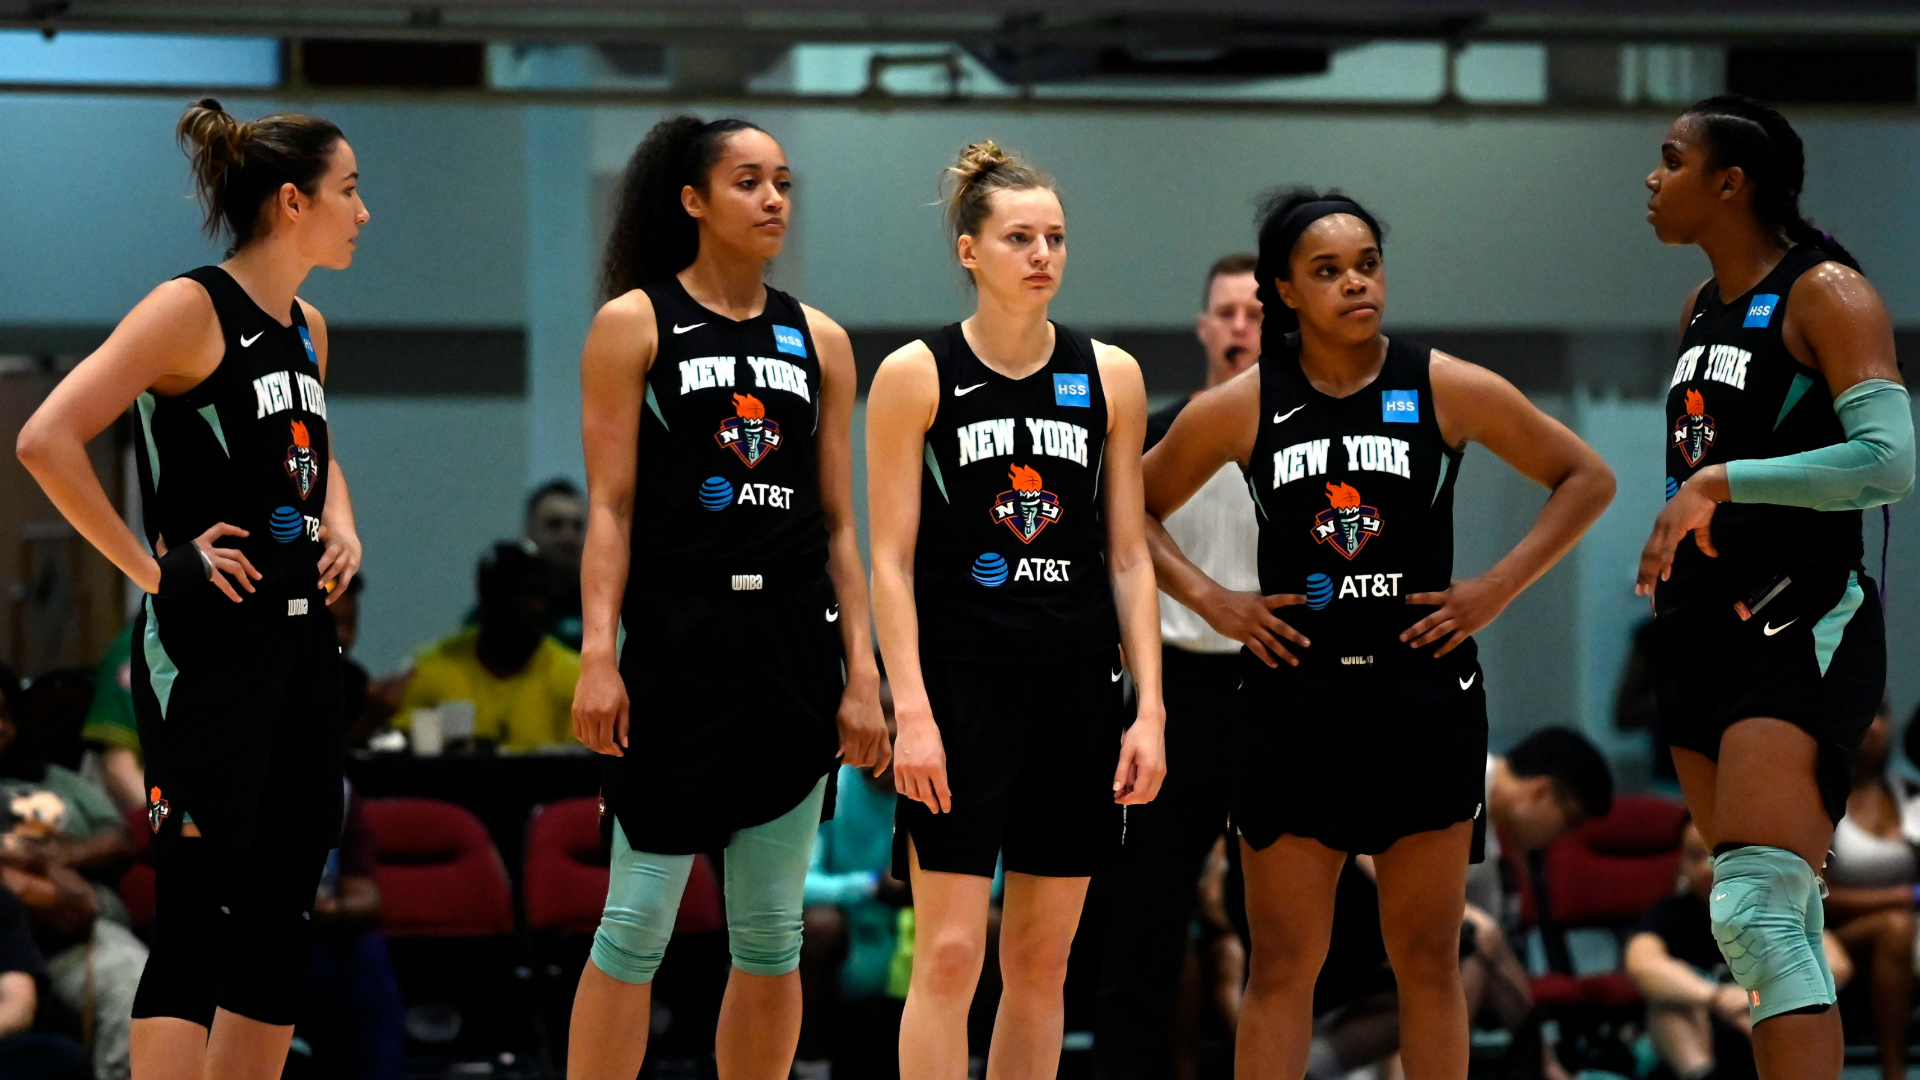 WNBA's New York Liberty to play homes games at Brooklyn's Barclays Center